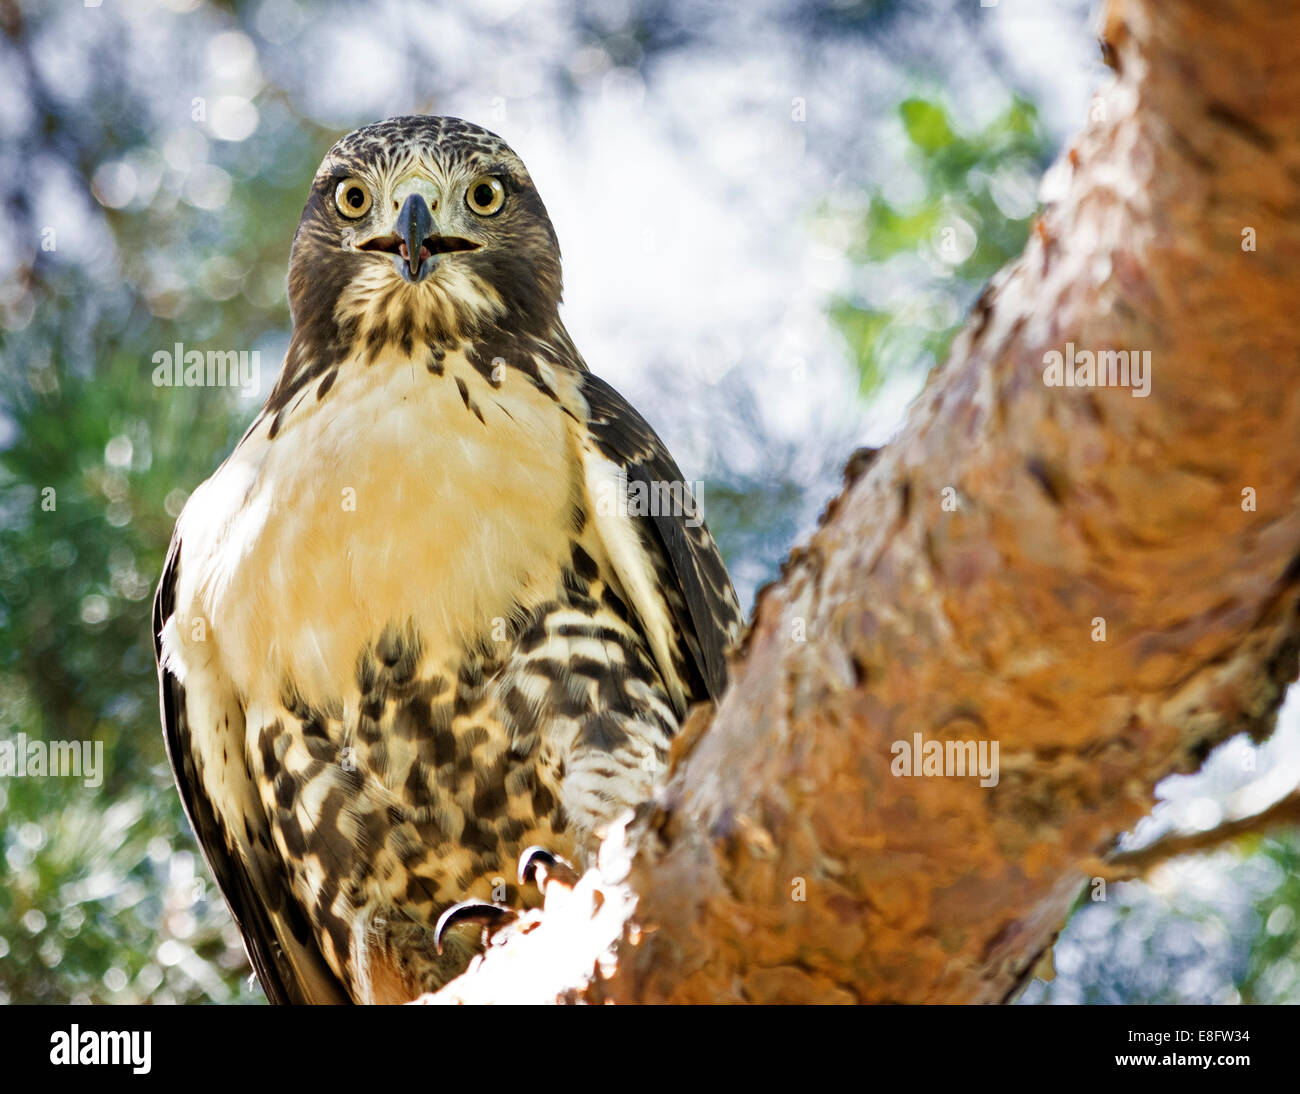 USA, Colorado, Denver, Red-tailed Hawk (Buteo jamaicensis) in City Park - Stock Image